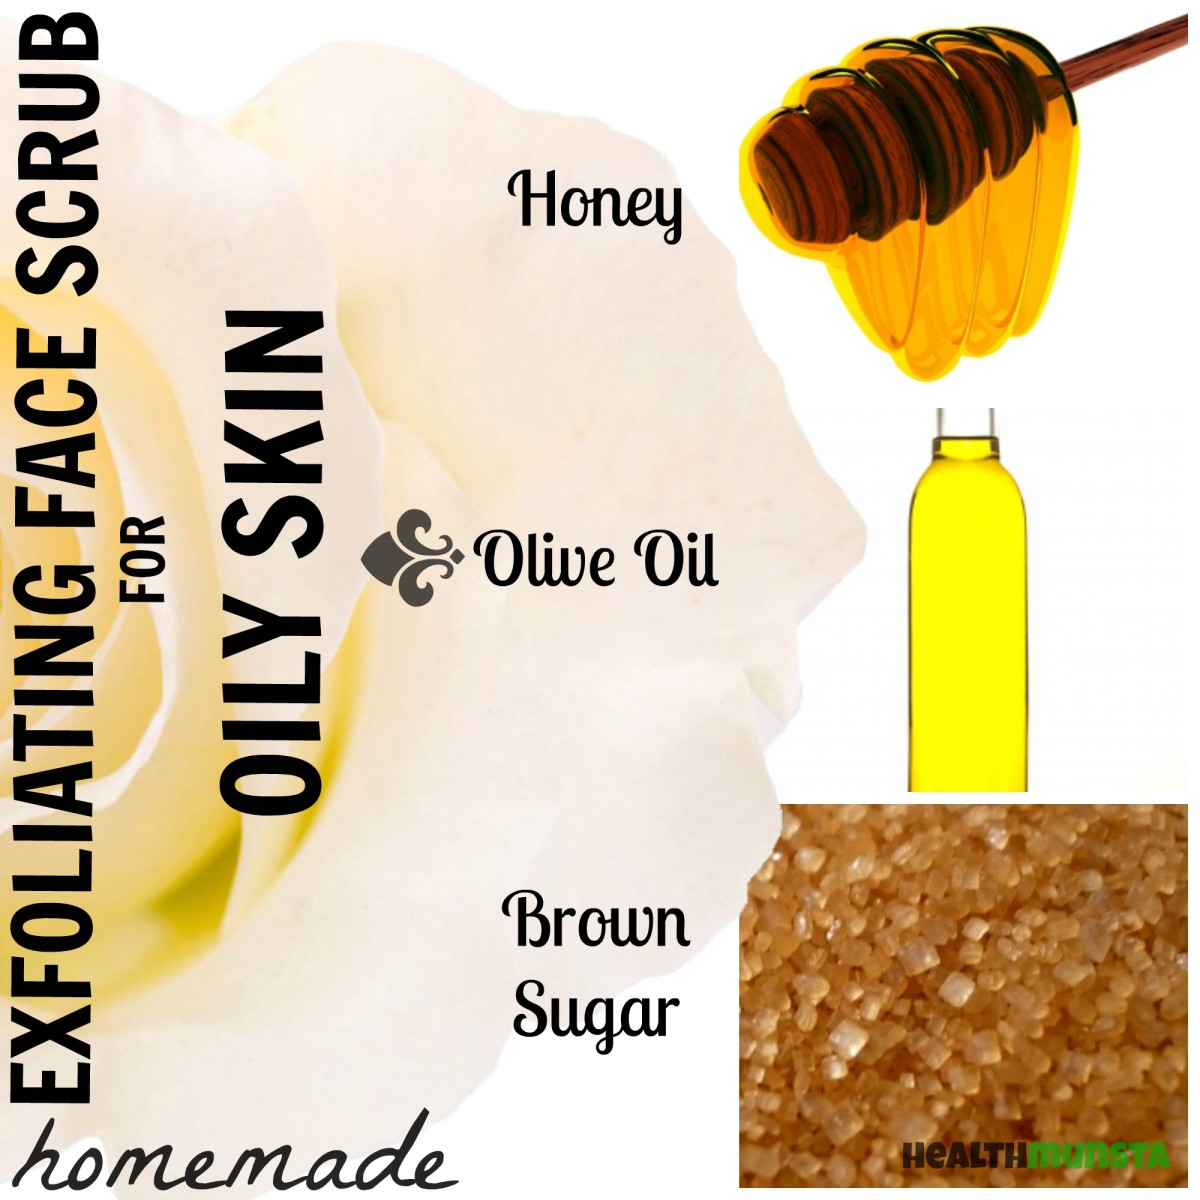 Got oily skin? Definitely try out this brown sugar face mask that will exfoliate and refresh your skin cells by exfoliating them completely.